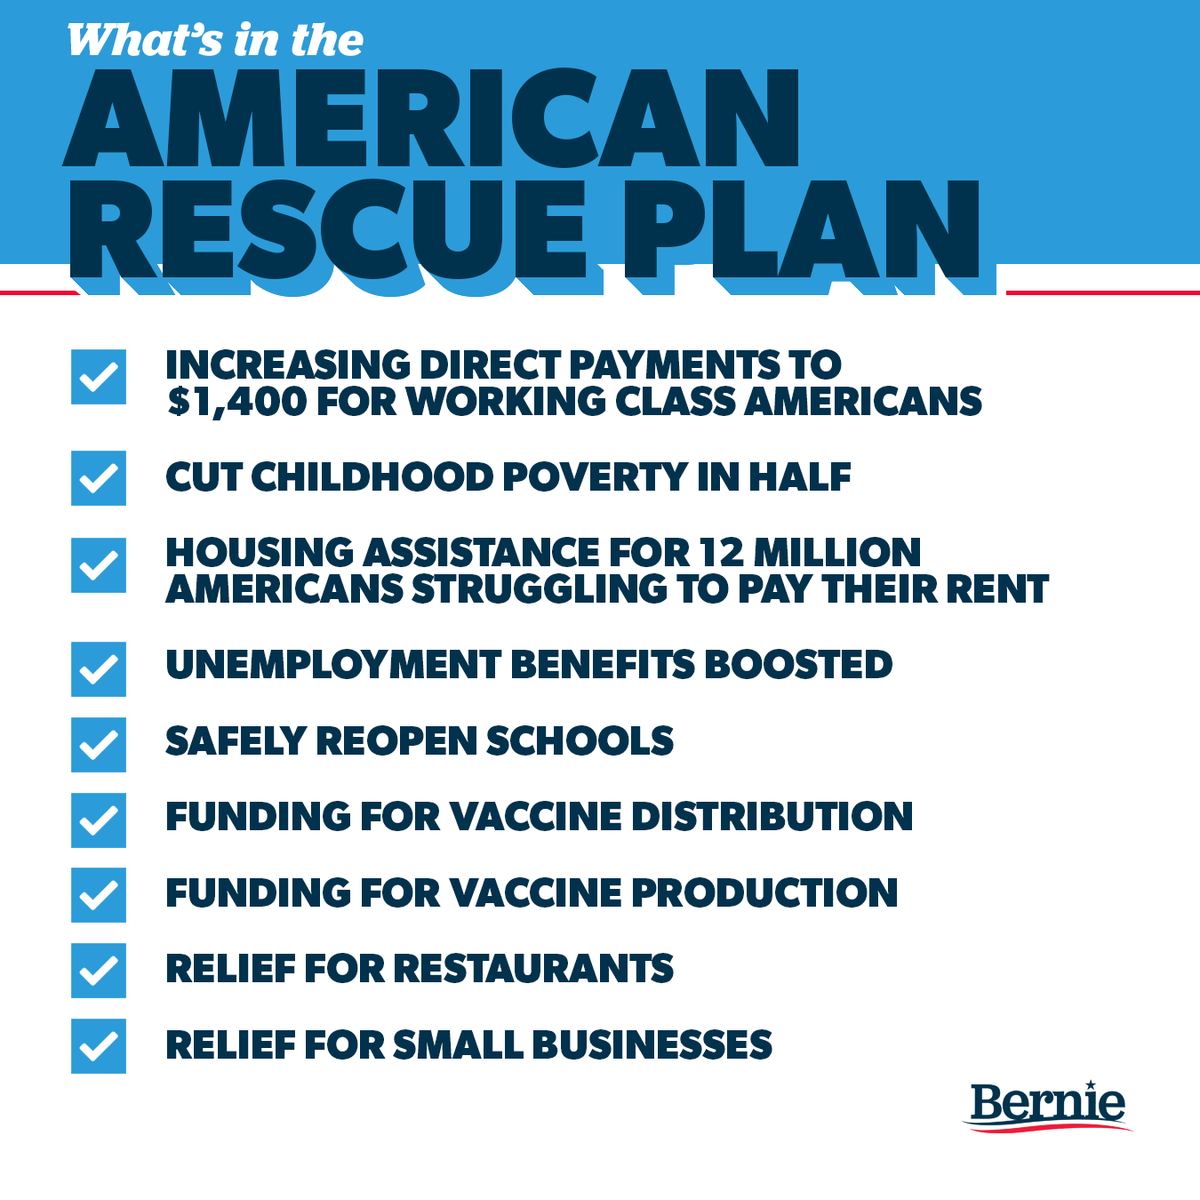 The American Rescue Plan is the most significant piece of legislation to benefit working people in the modern history of this country.